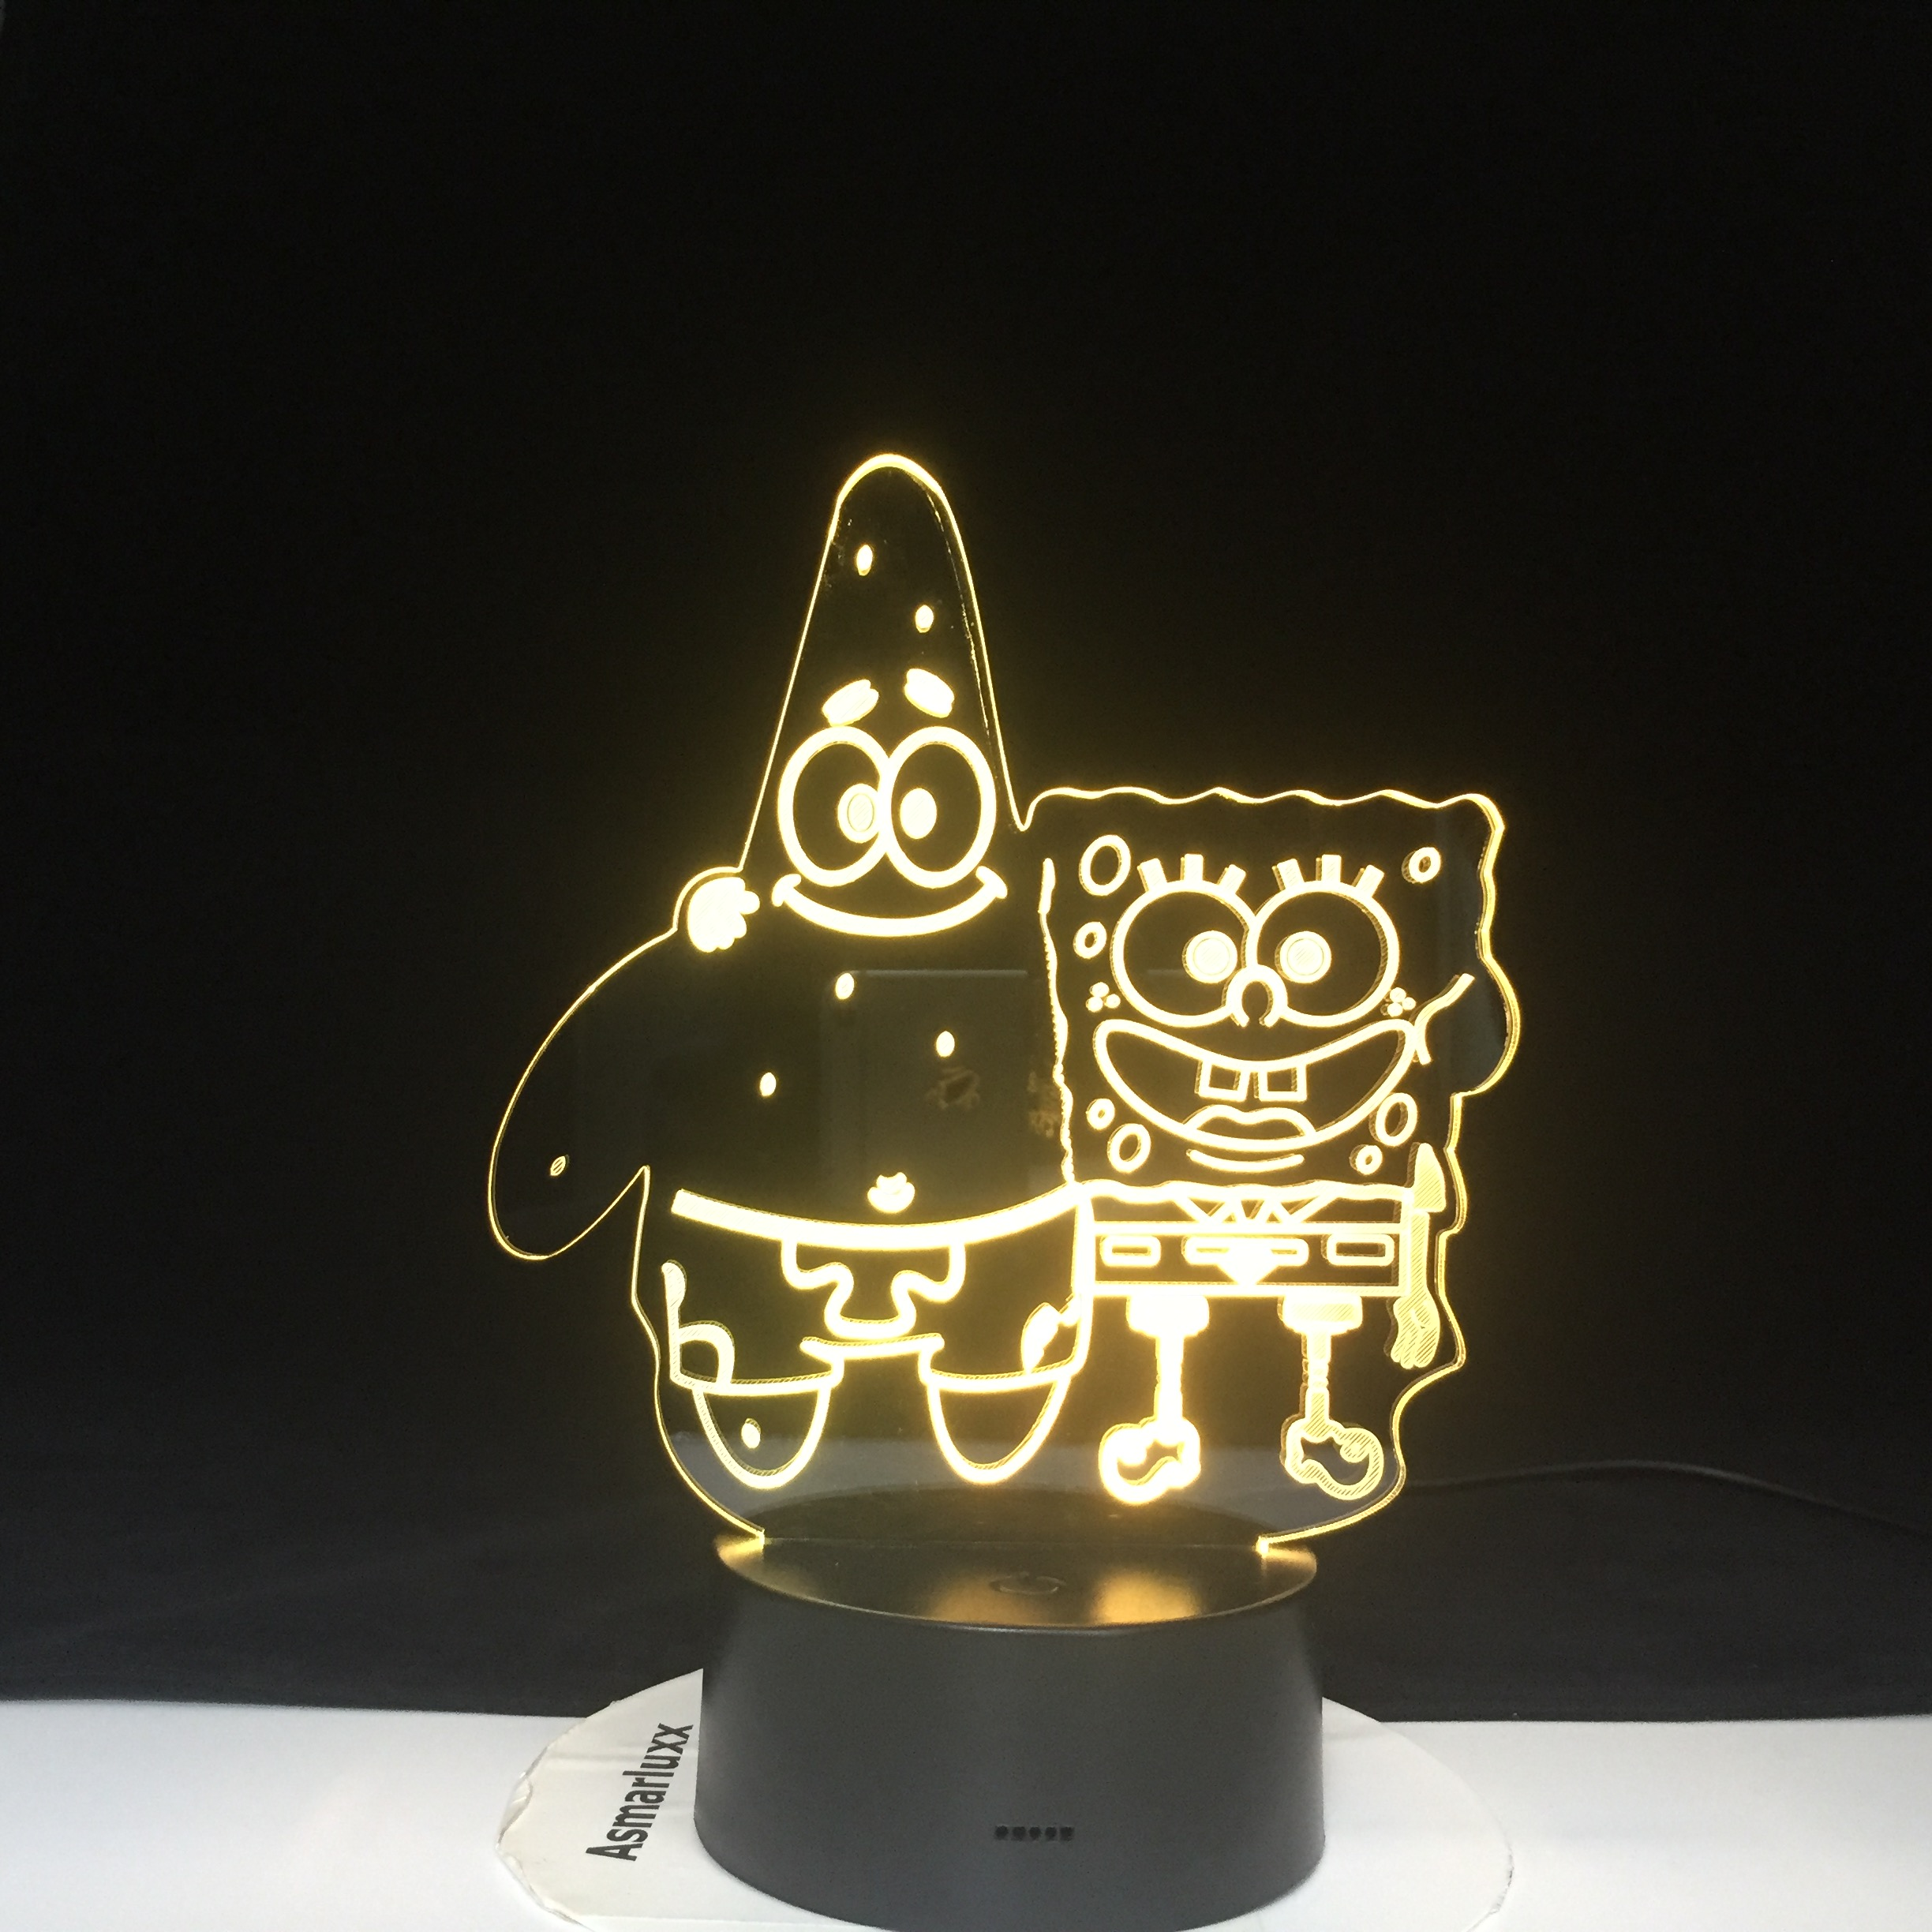 Spongebob Patrick Acrylic 7 Colors Desk Lamp 3D Lamp Novelty Led Night Light Square Pants LED Vision Stereo Lamp Kids  Baby Room